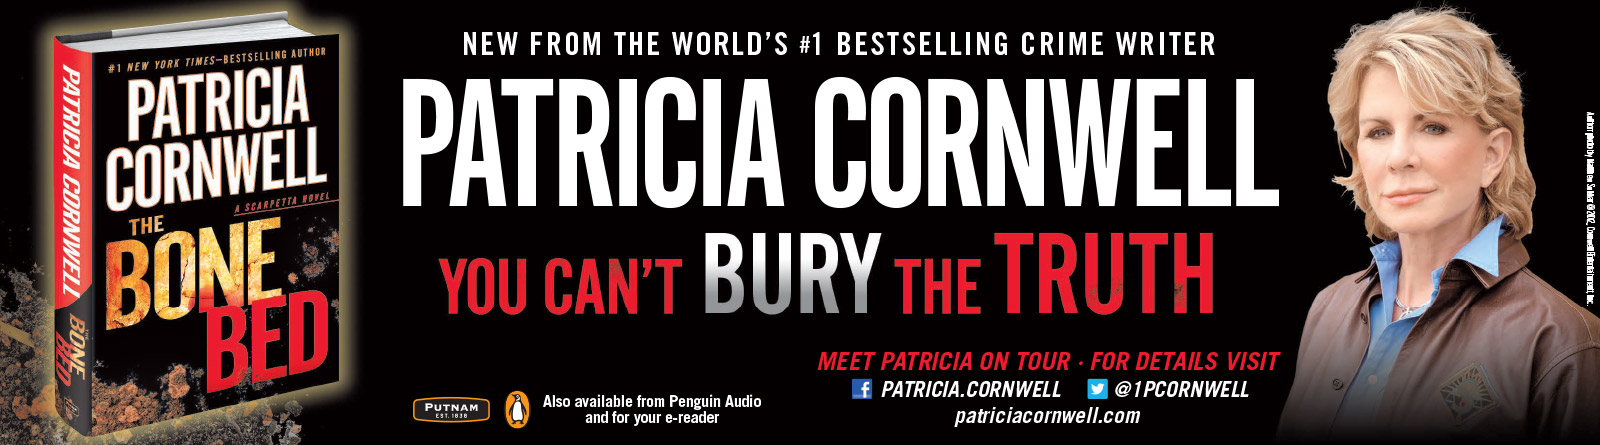 Patricia Cornwell - The Bone Bed - USA Today